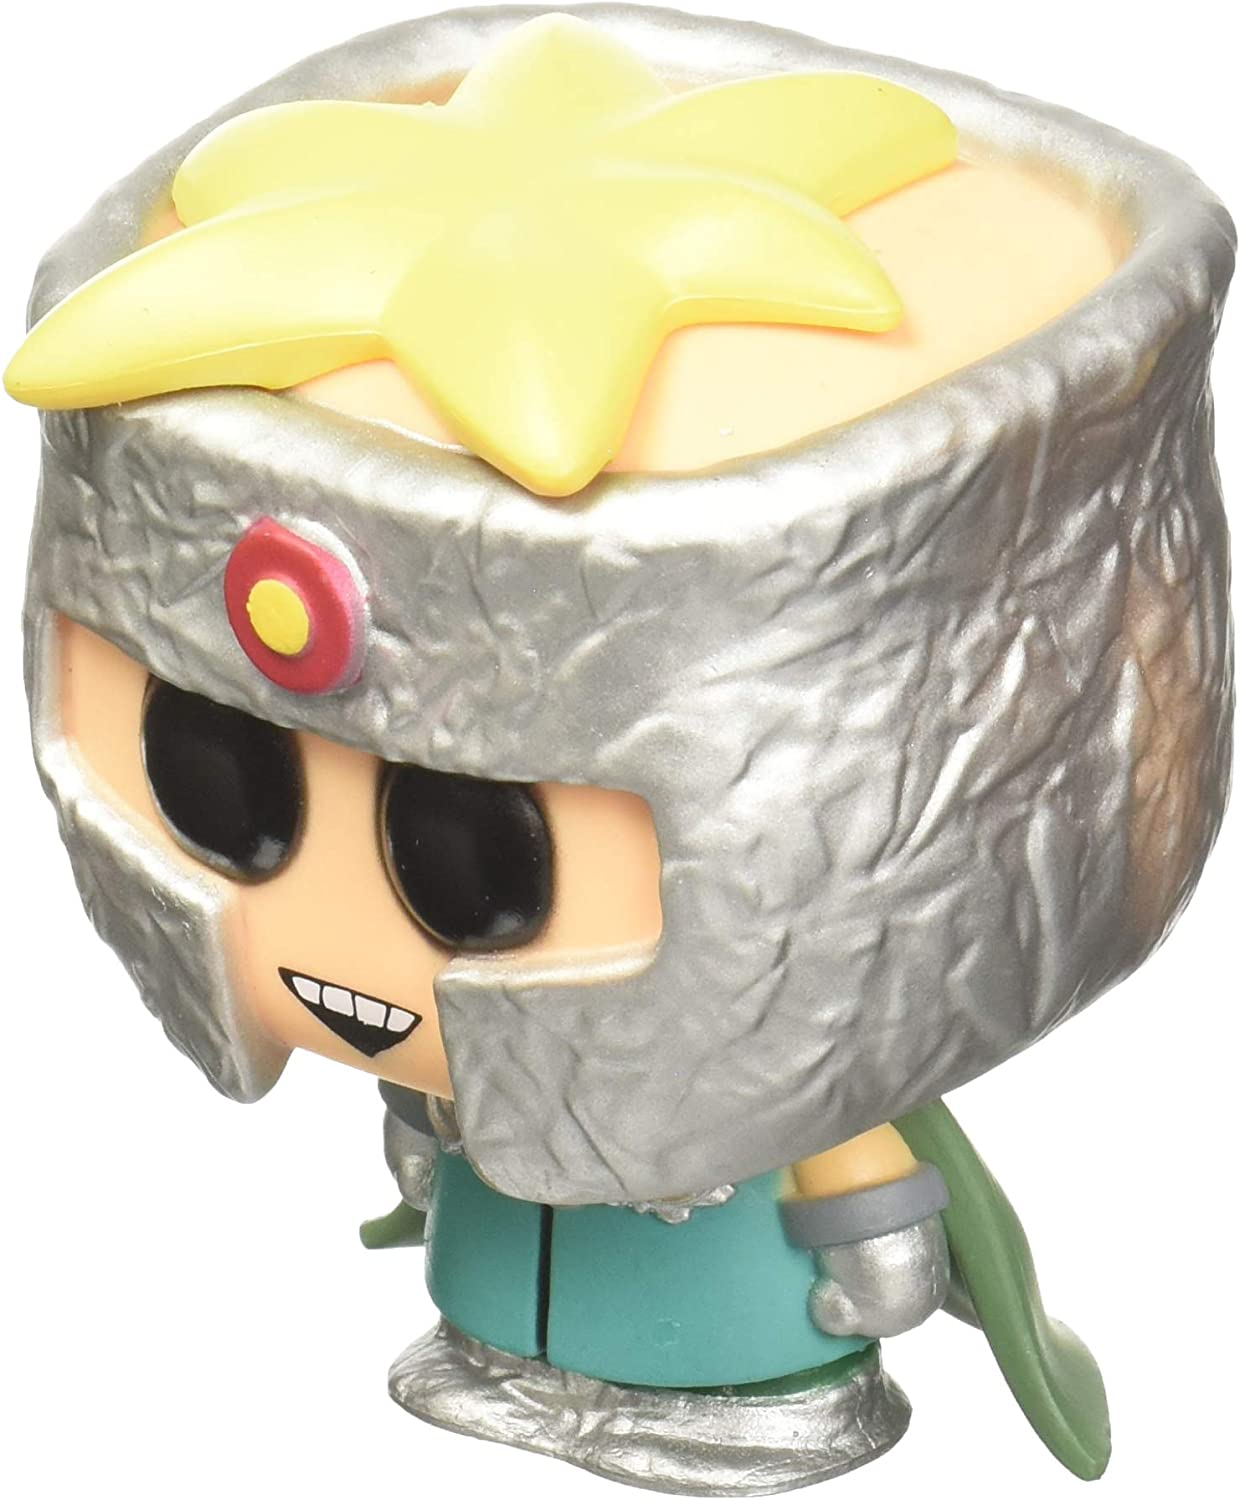 "Nickelodeon 13272 Funko Pop Television South Park Professor Chaos Figure, 3.75"", Multicolor"